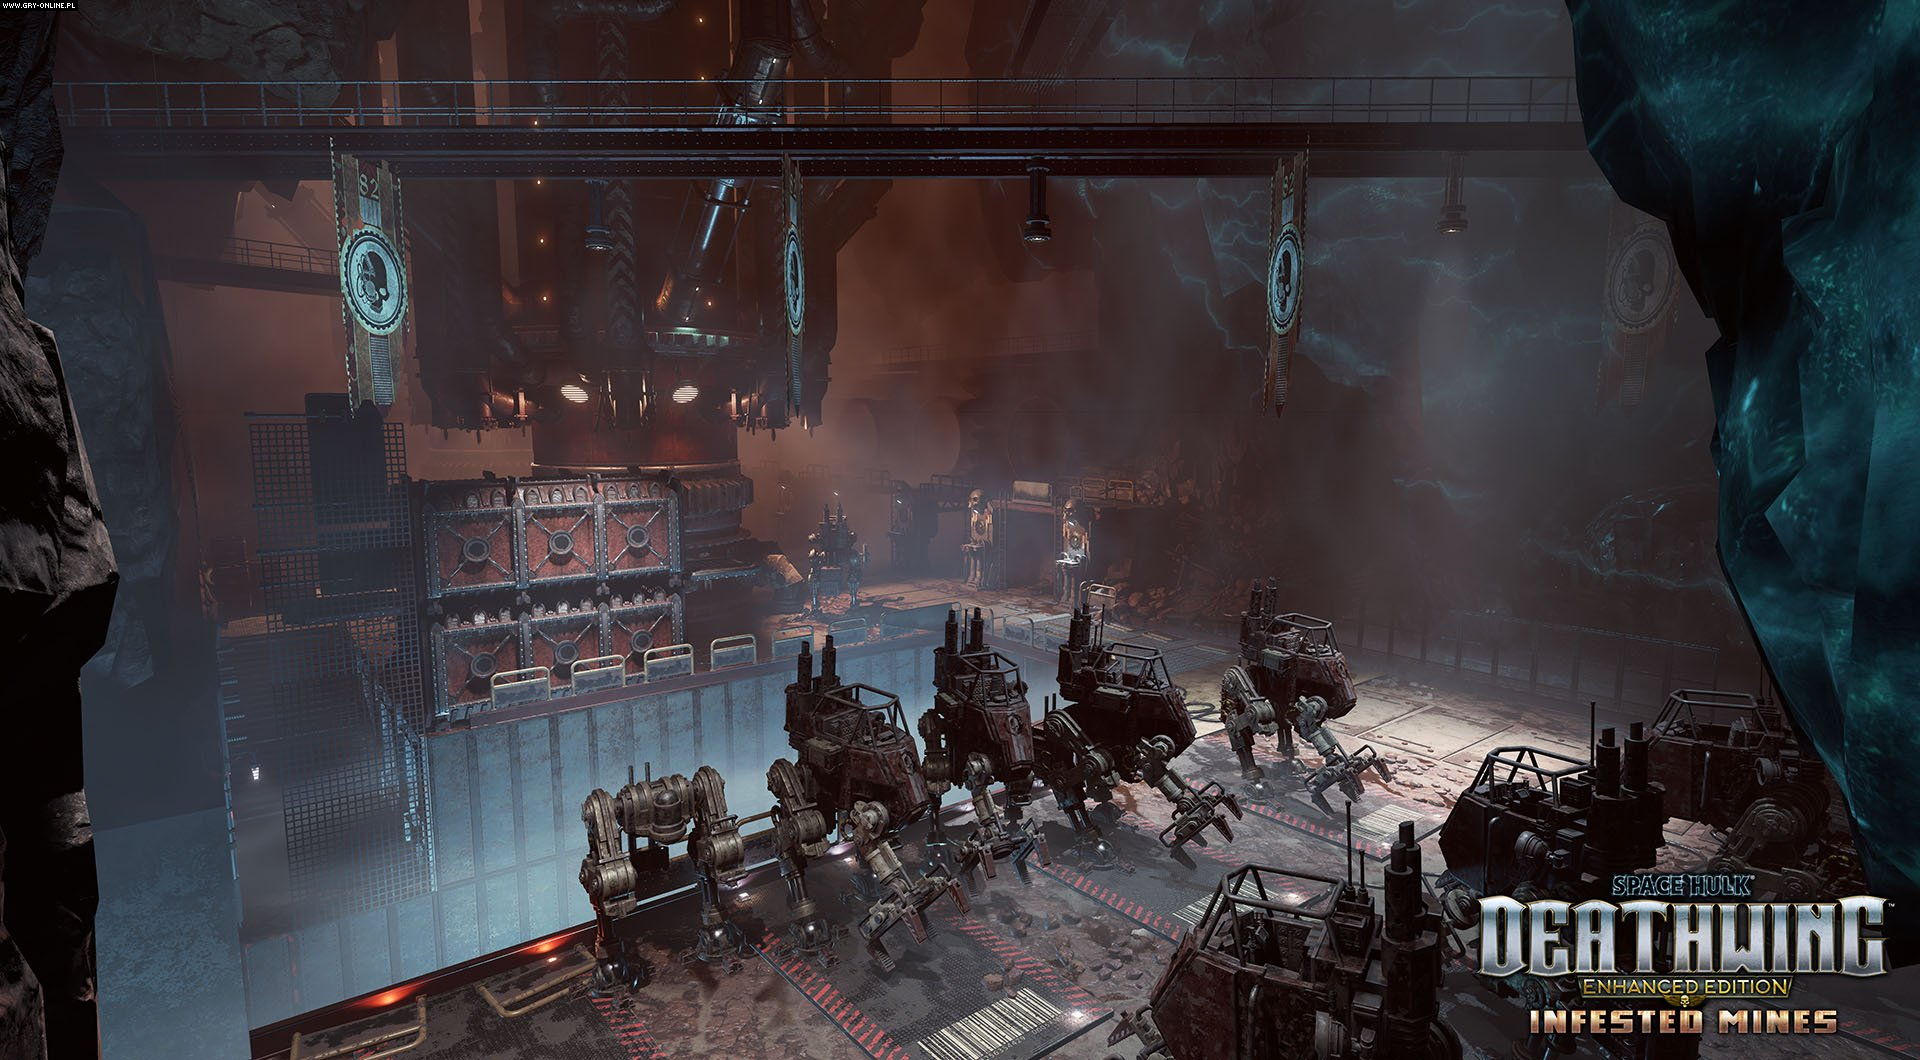 Space Hulk: Deathwing PC, PS4, XONE Gry Screen 4/30, Streum on Studio, Focus Home Interactive